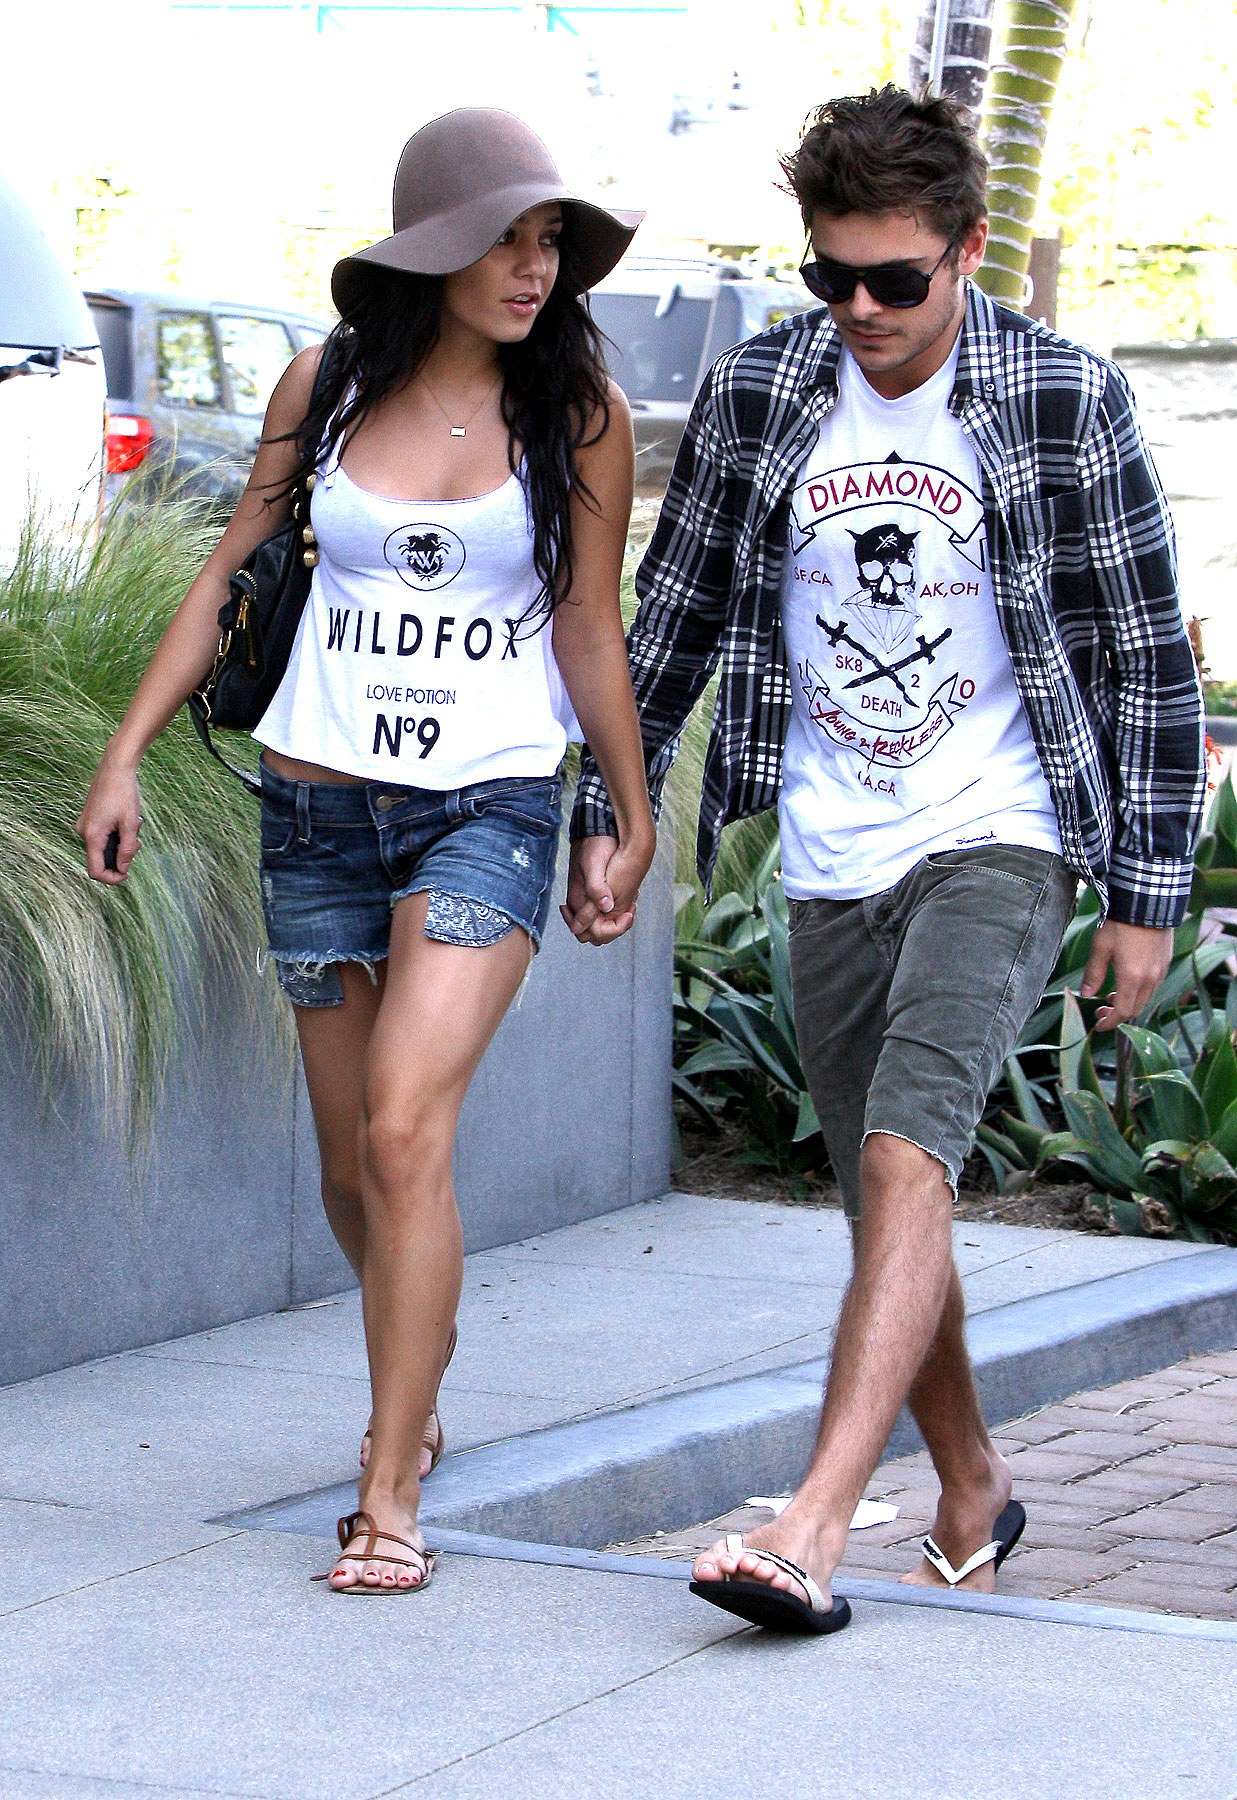 Zac Efron And Vanessa Hudgens Are Total Twinsies (PHOTOS)